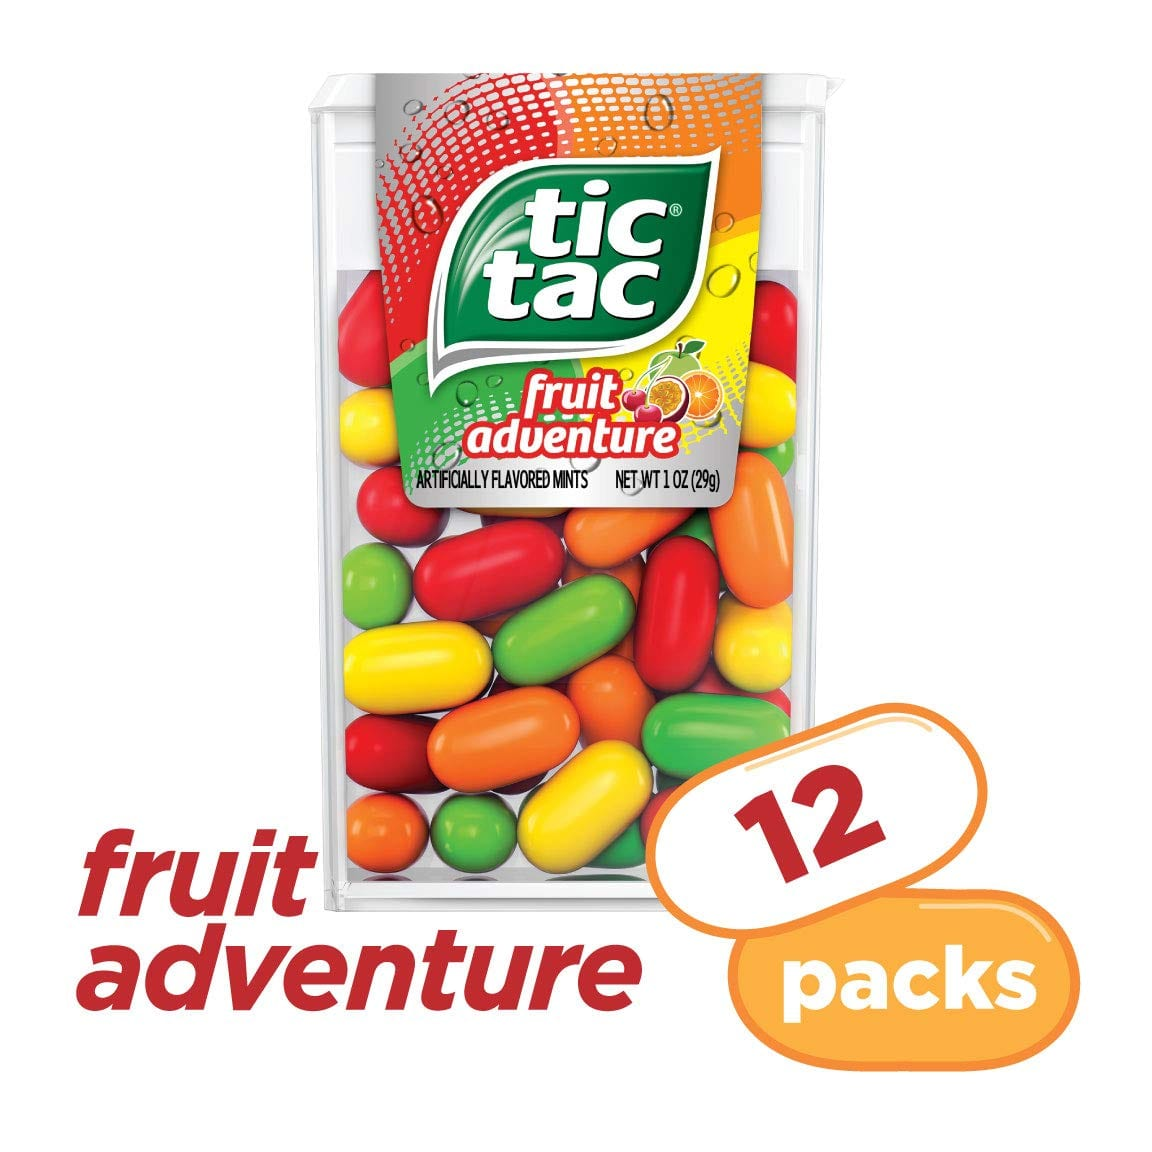 Tic Tac Fresh Breath Mints, Fruit Adventure, 1 oz Singles, 12 Count $5.70 with s/s